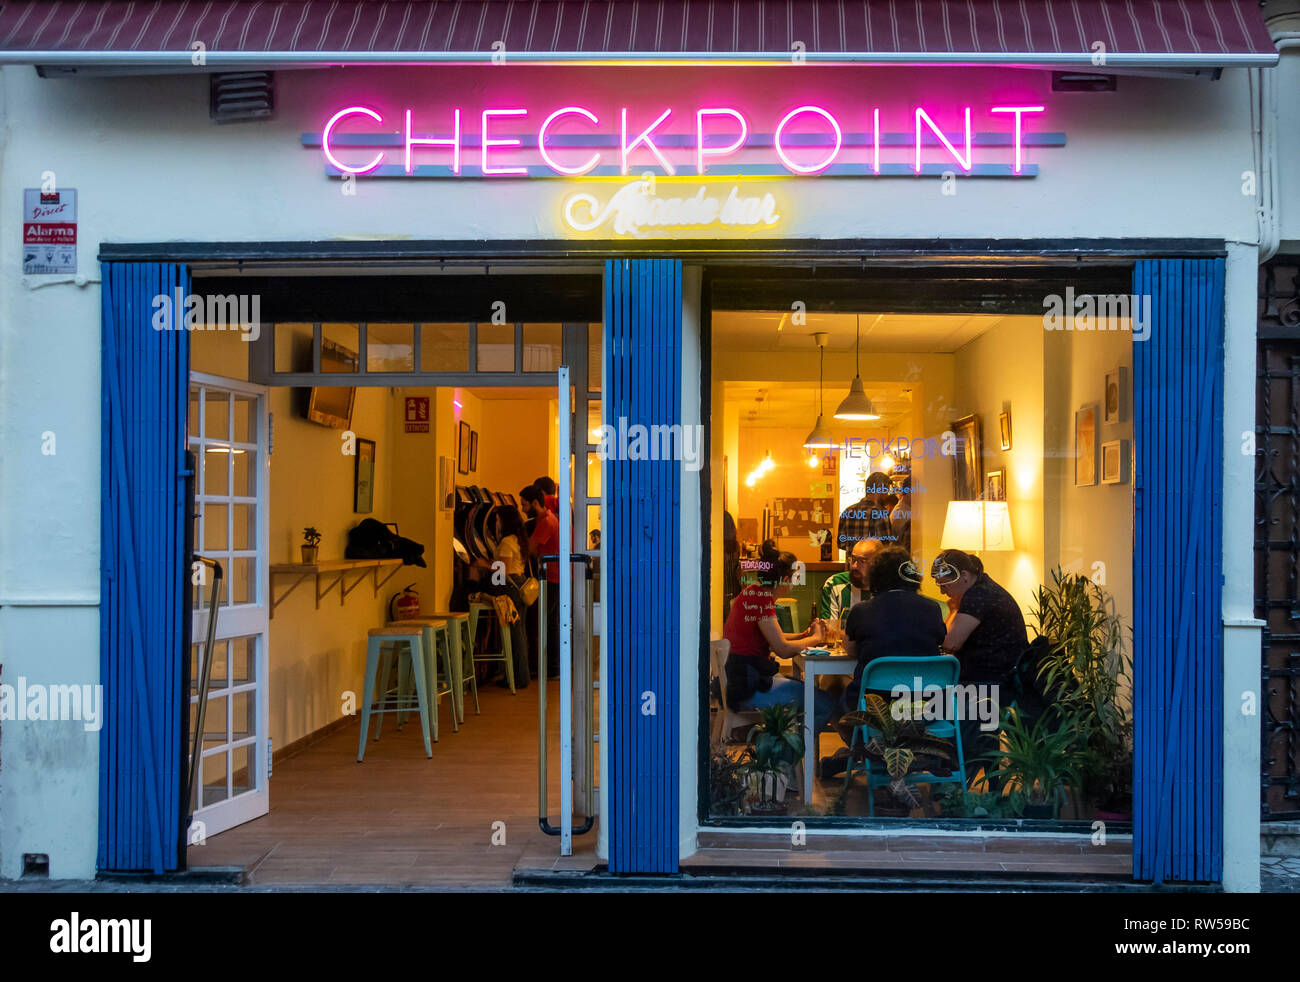 Checkpoint Arcade Bar, a place to play games and a have a drink and a snack in Seville, Spain - Stock Image